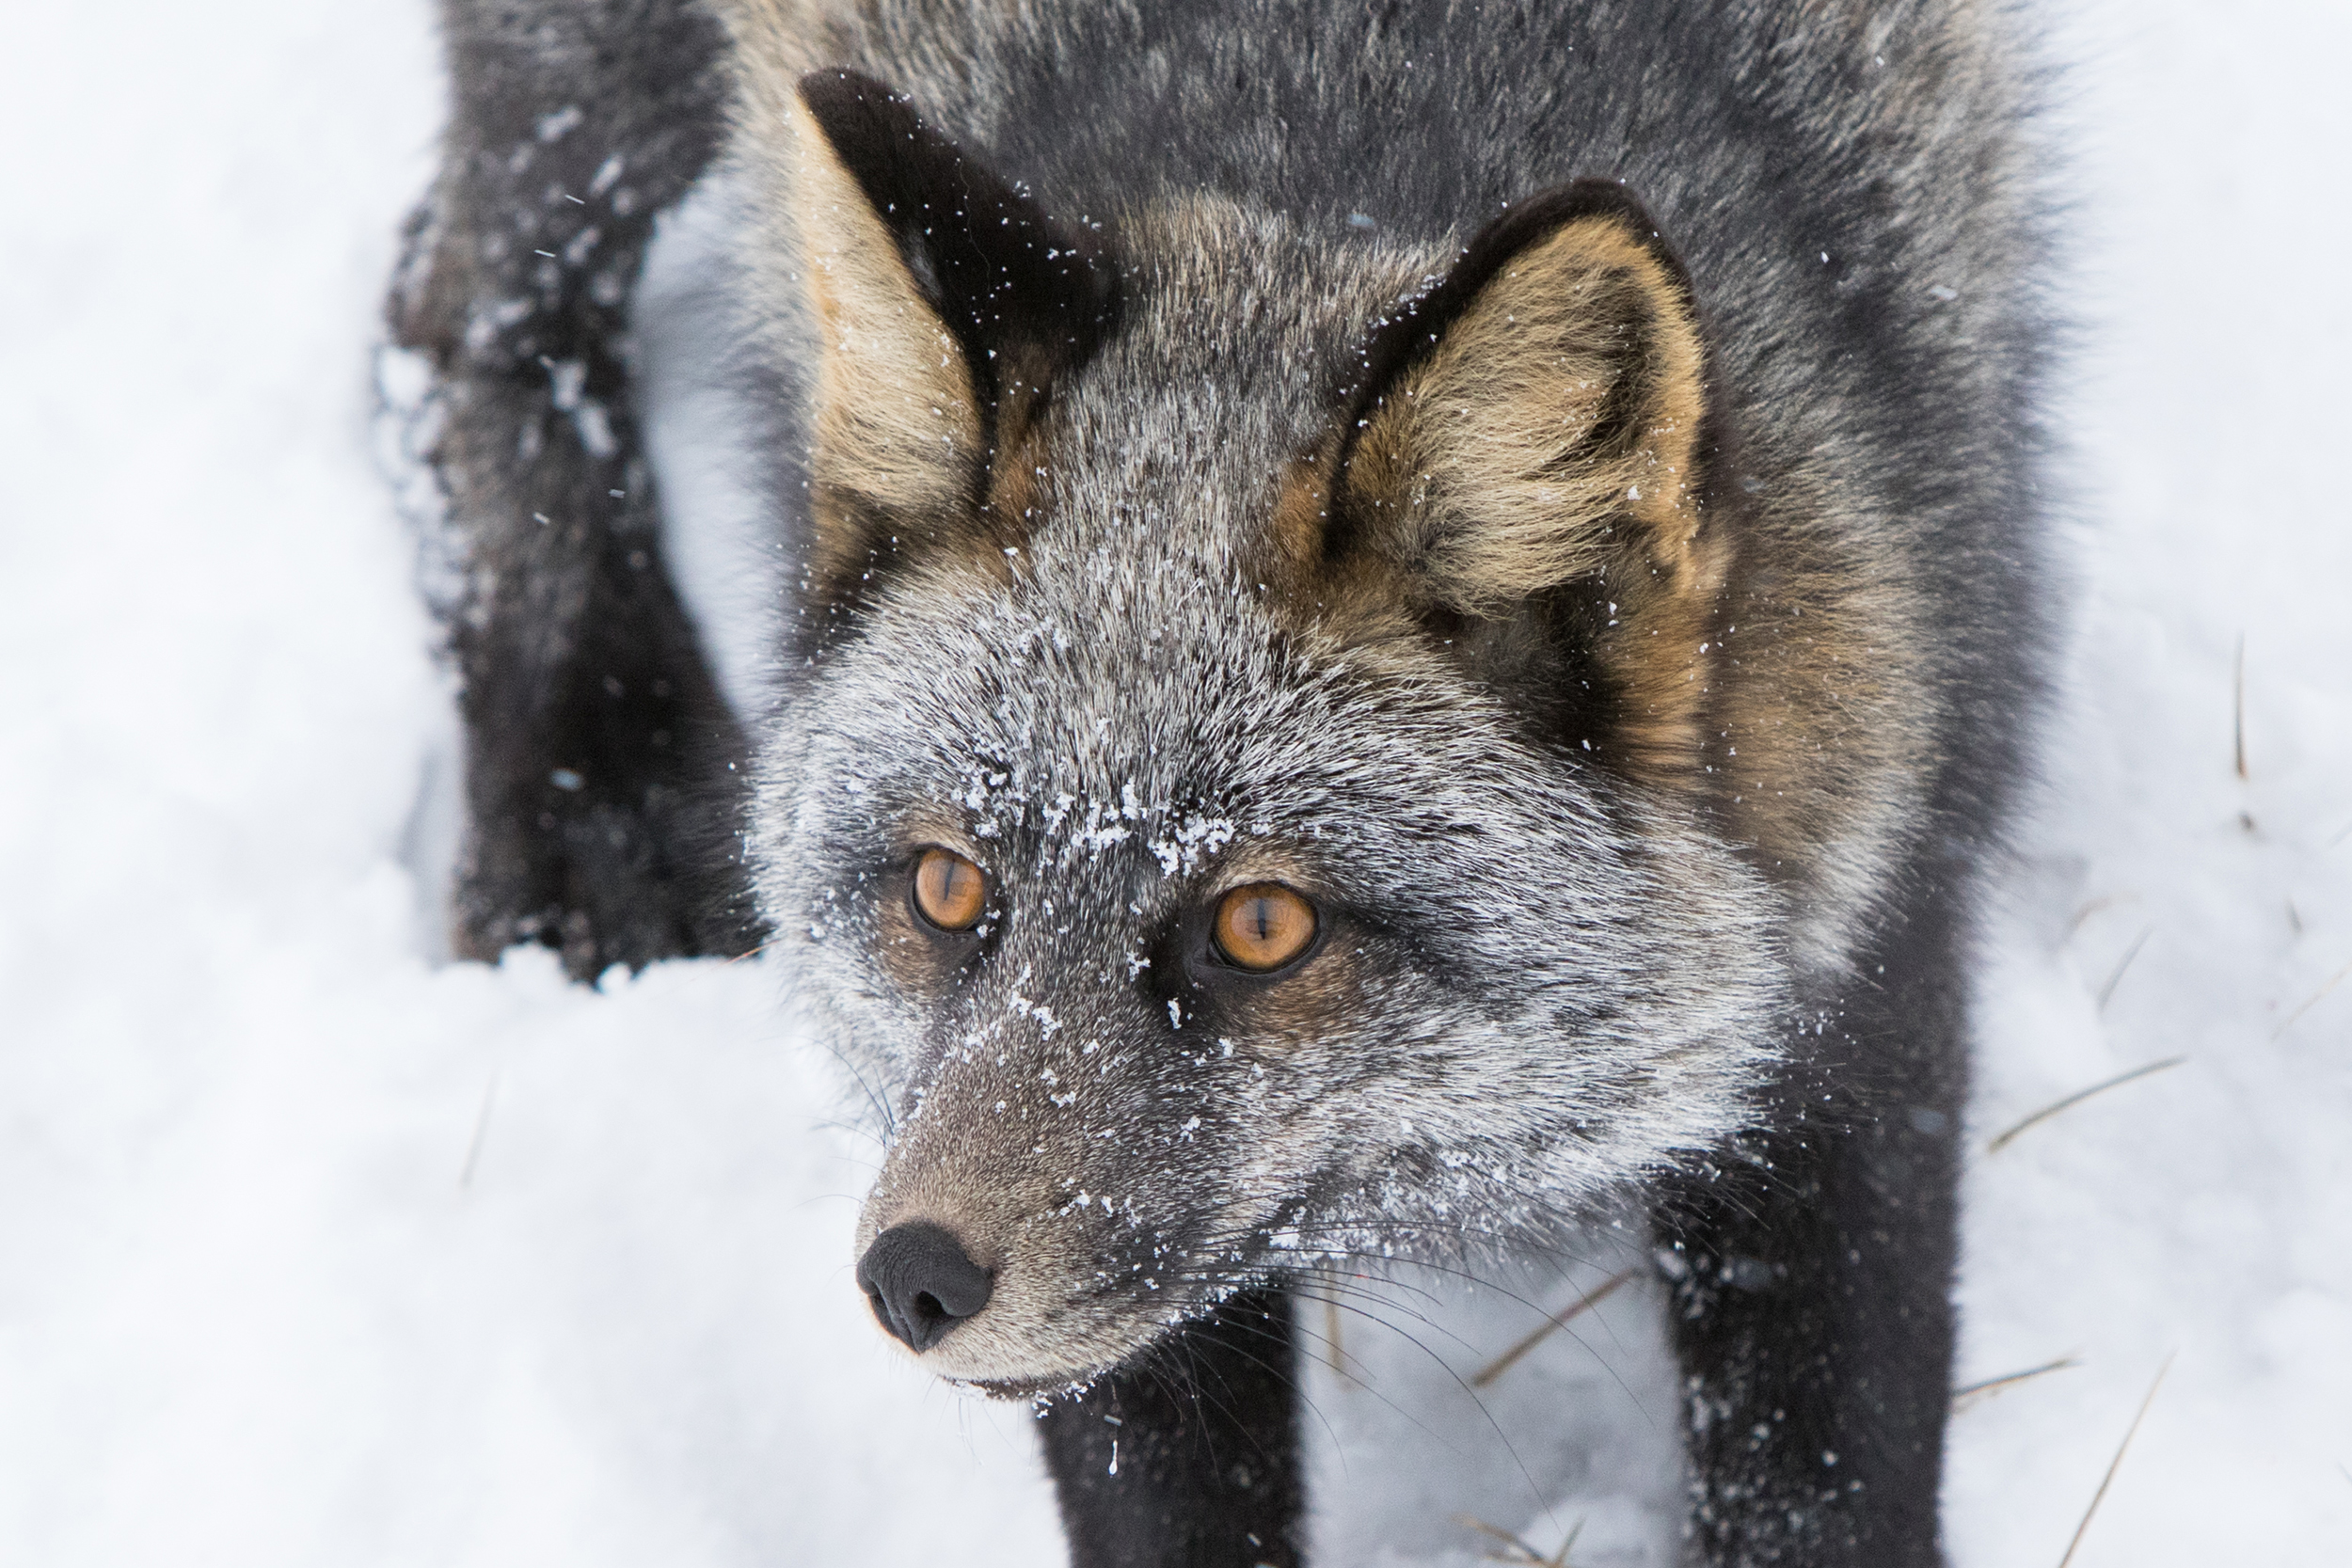 Silver fox/cross fox, depends on who you ask.